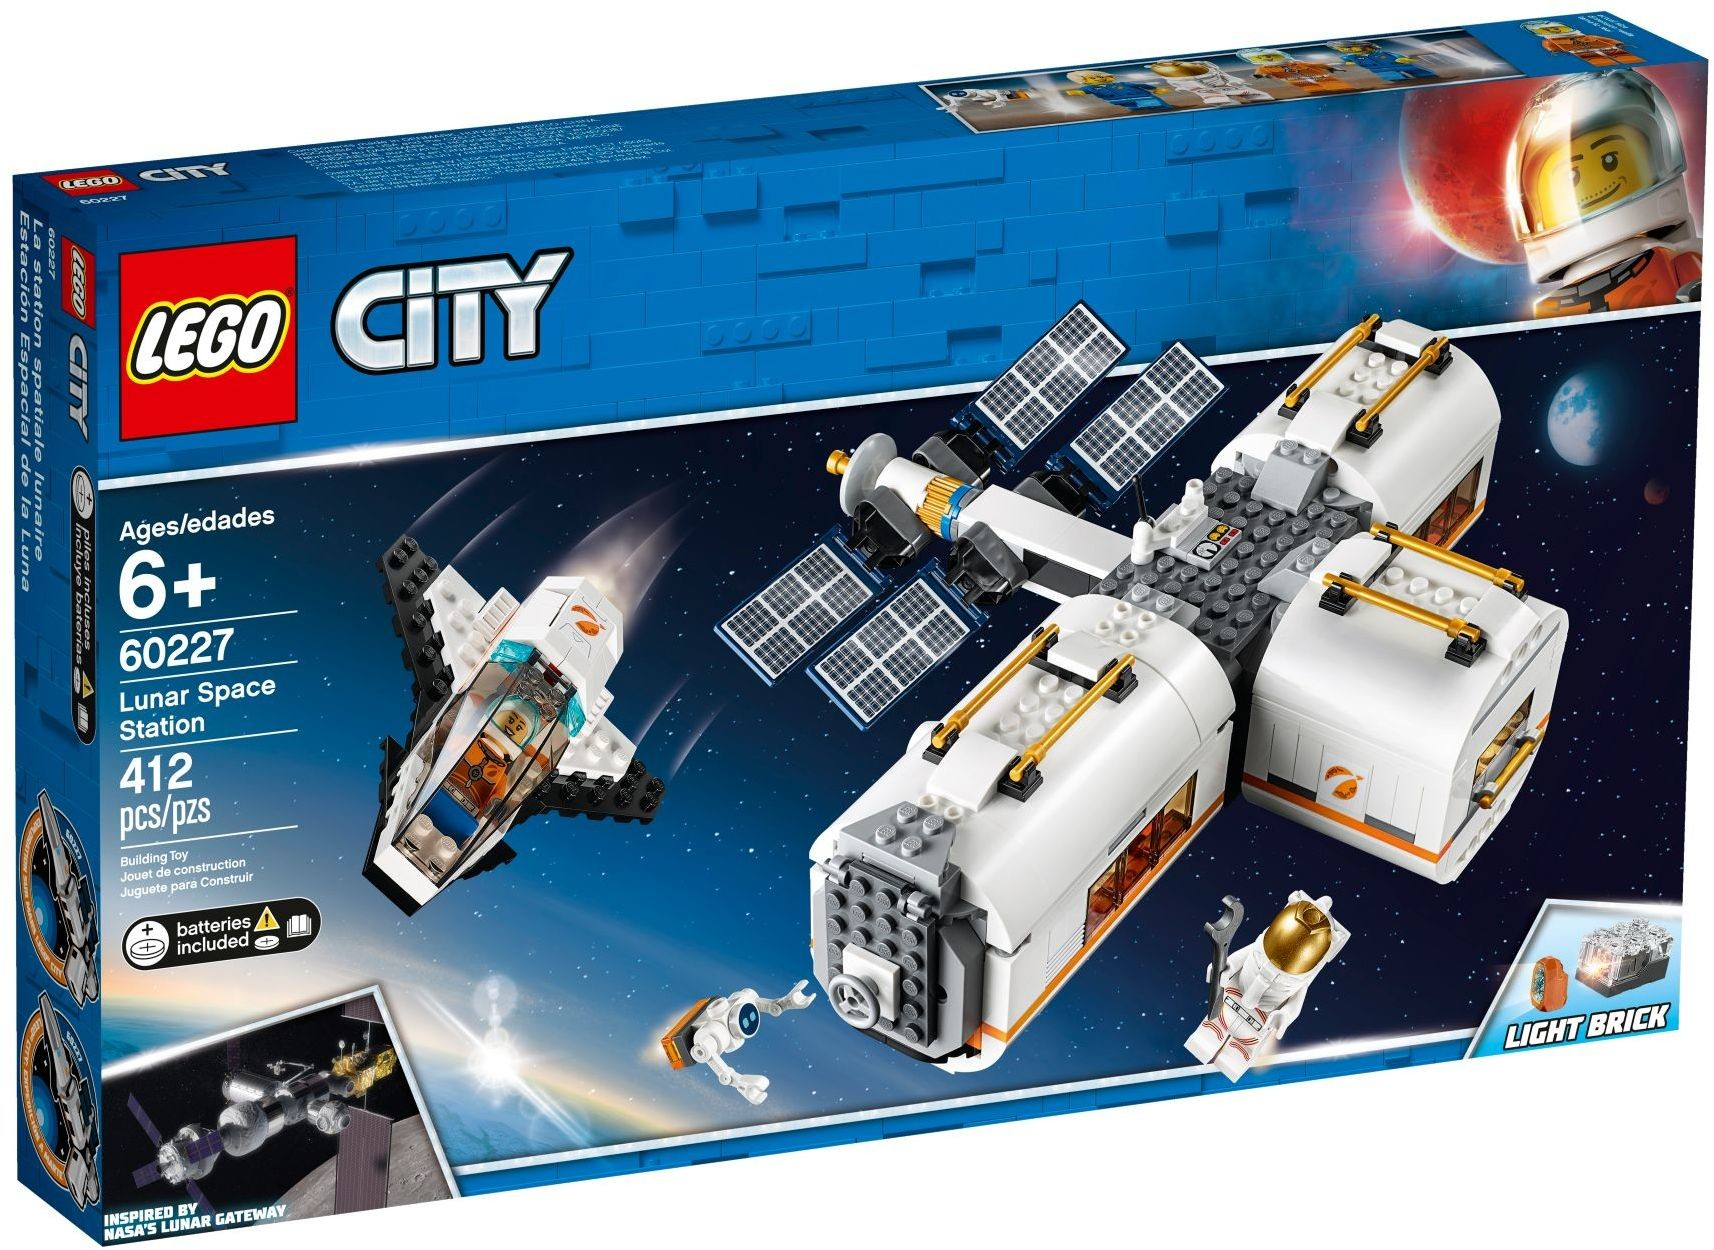 WANGE 4850 Space: The Moon Space Station 4